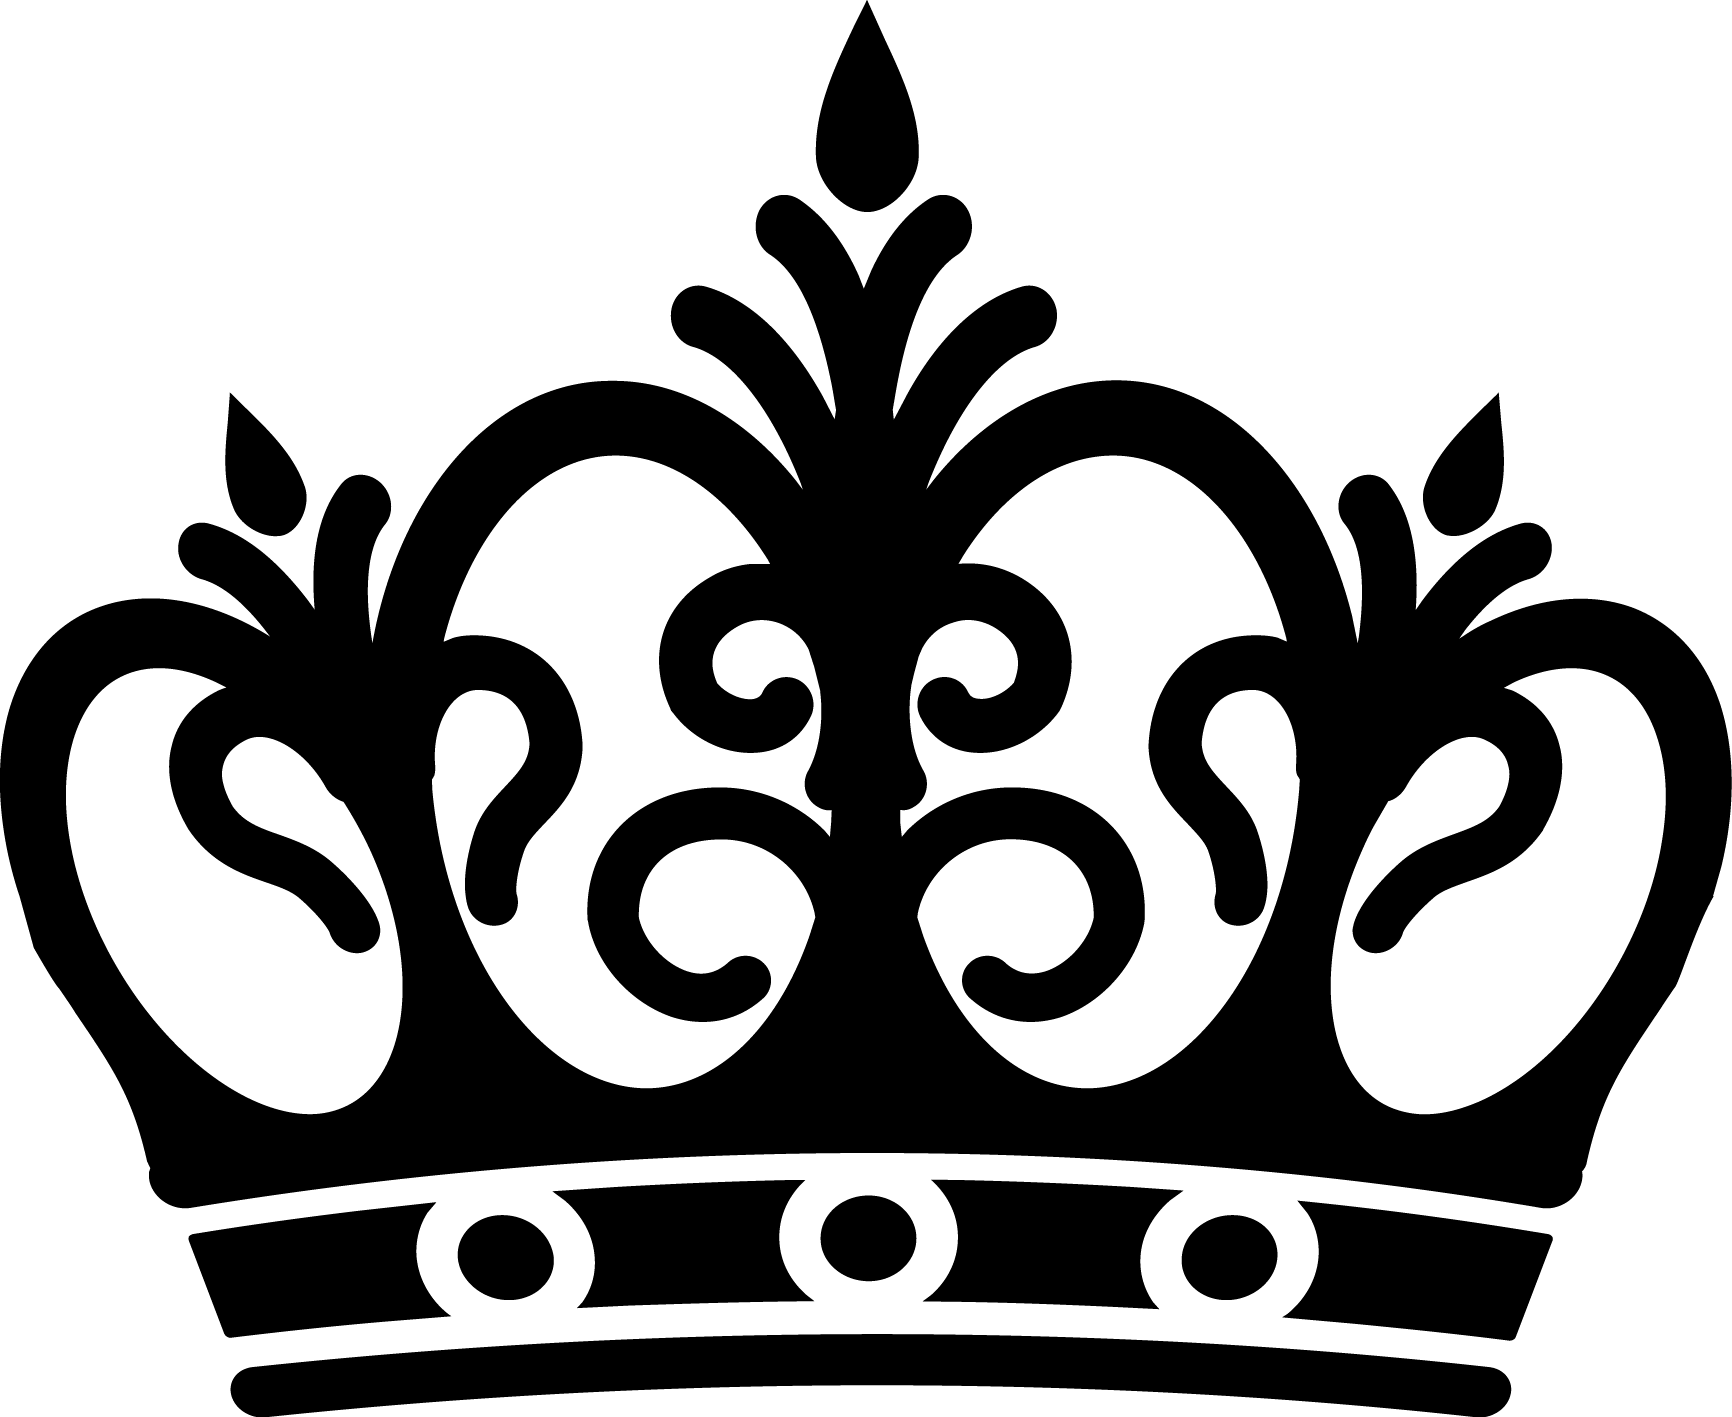 Queen crown clipart clipart transparent stock Black princess crown clipart - ClipartFest clipart transparent stock